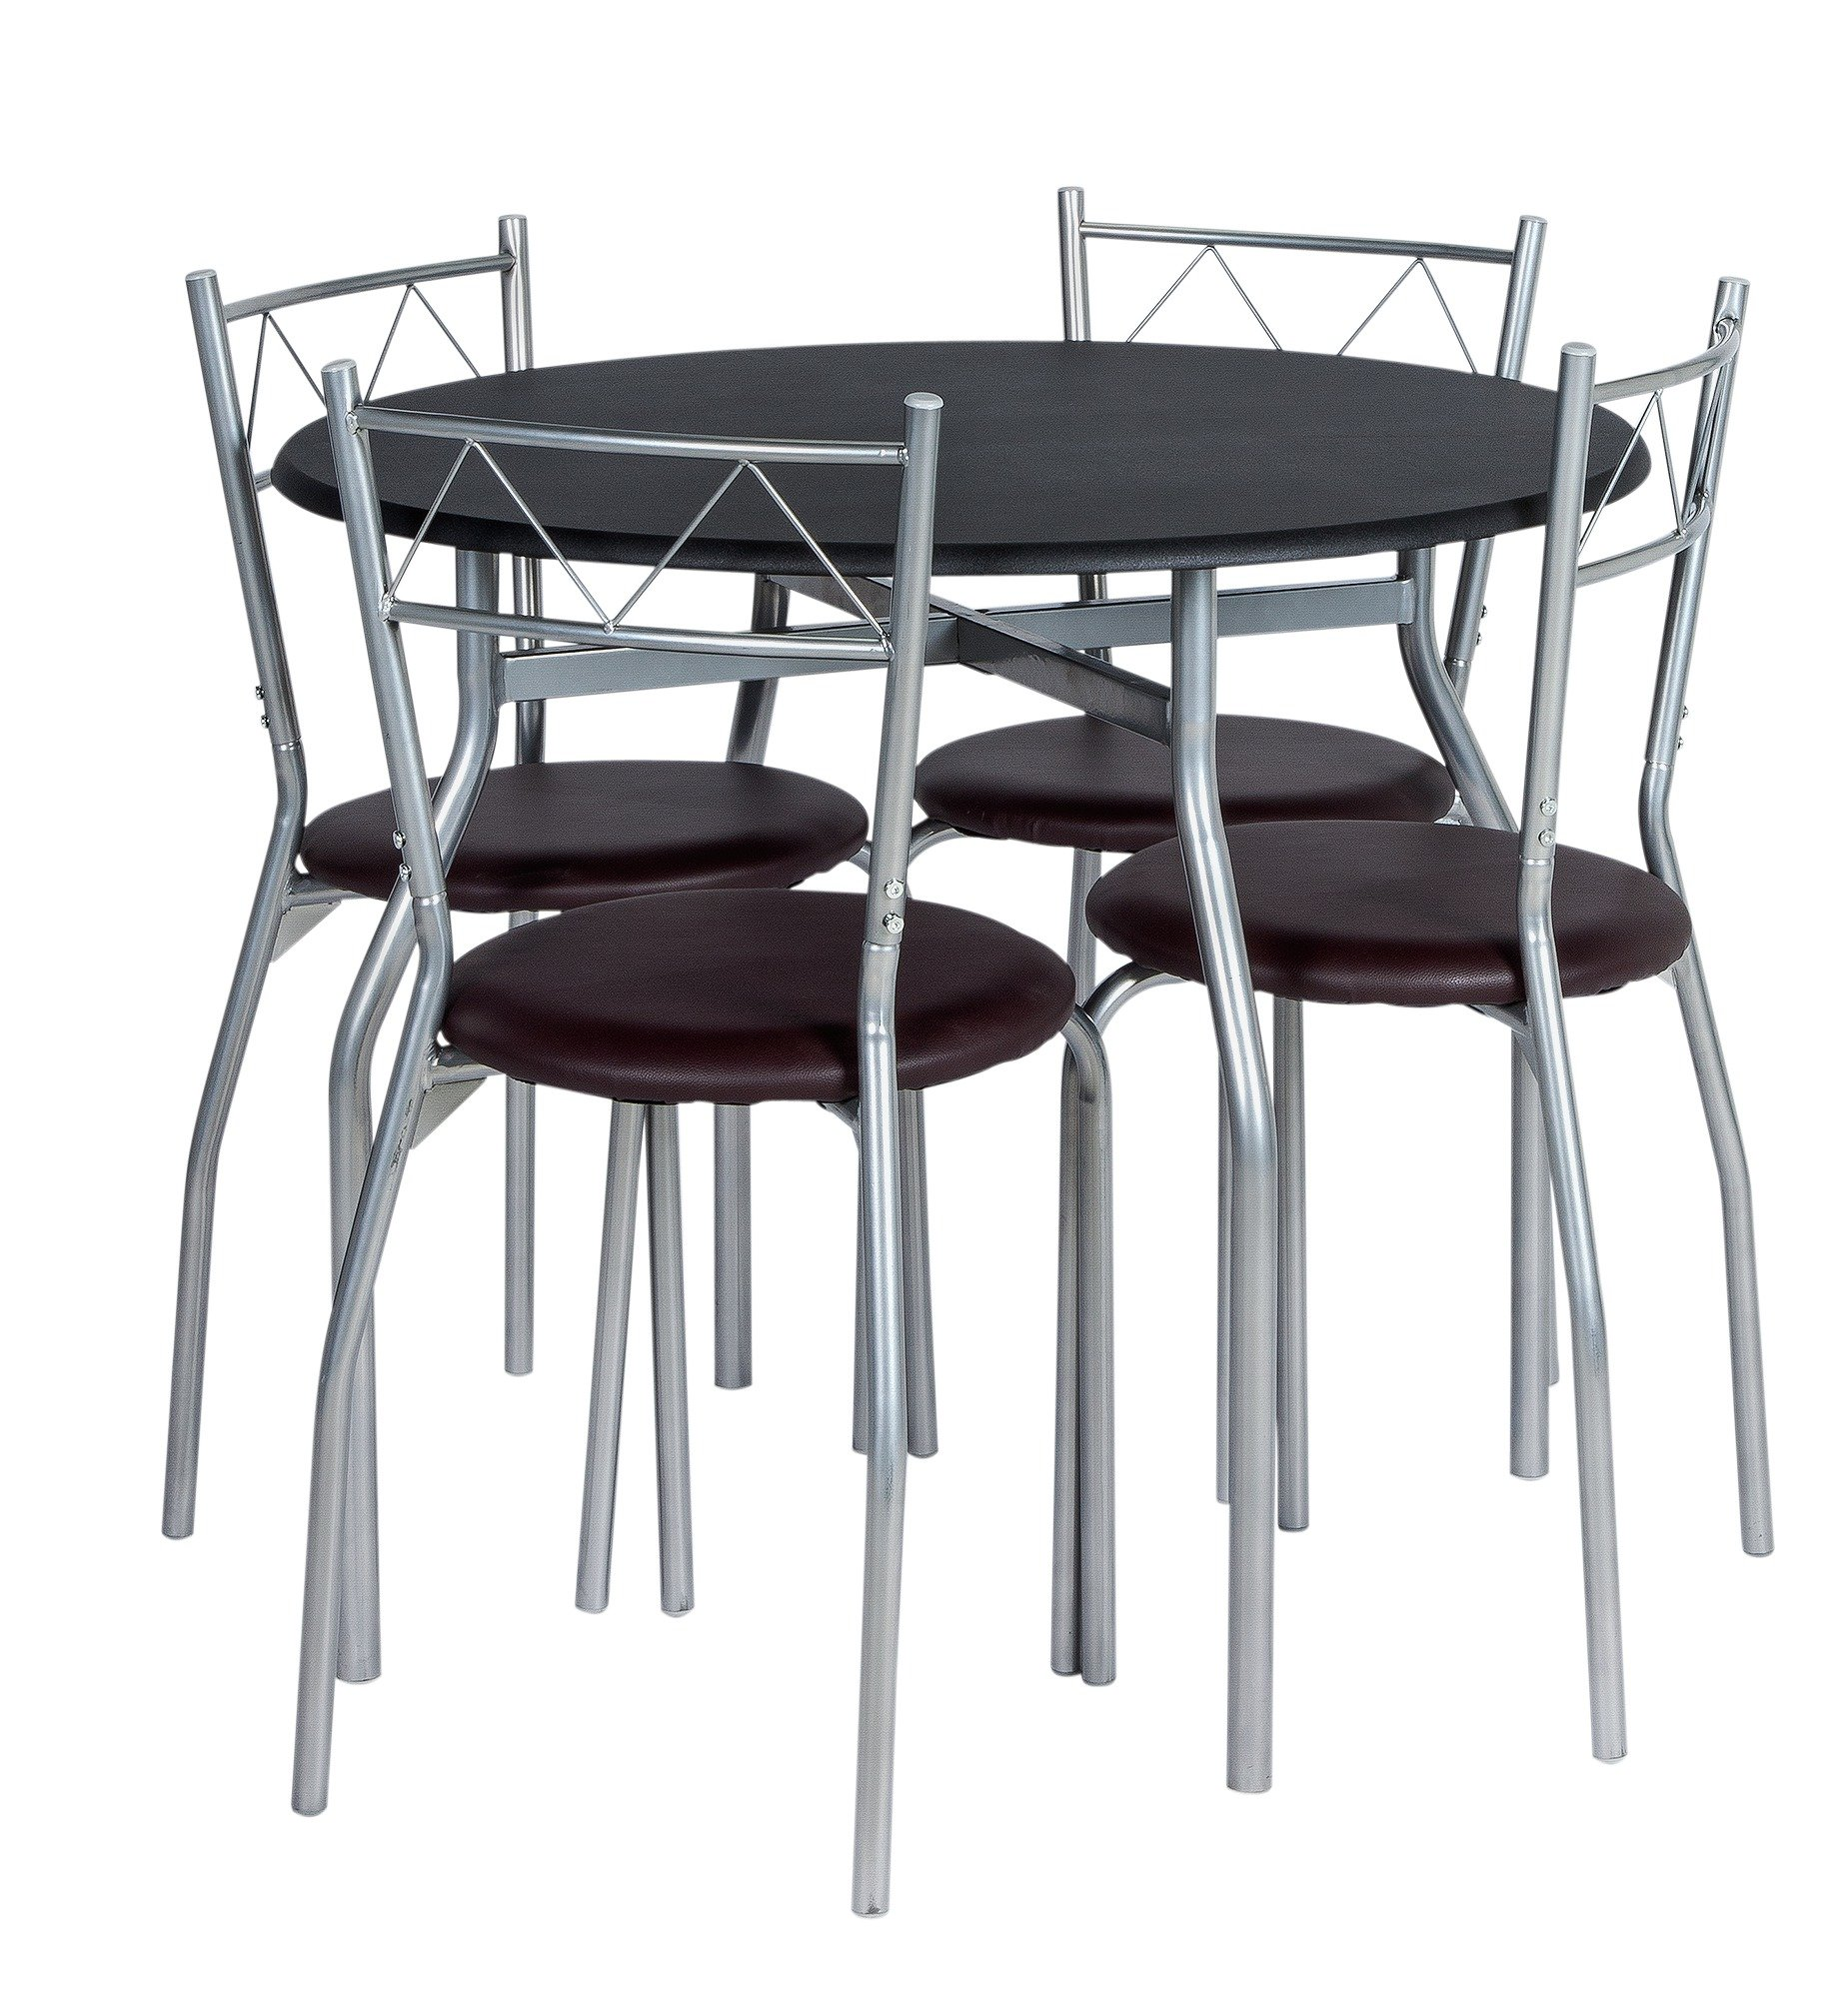 Buy HOME Oslo Round Dining Table 4 Chairs Black at Argoscouk